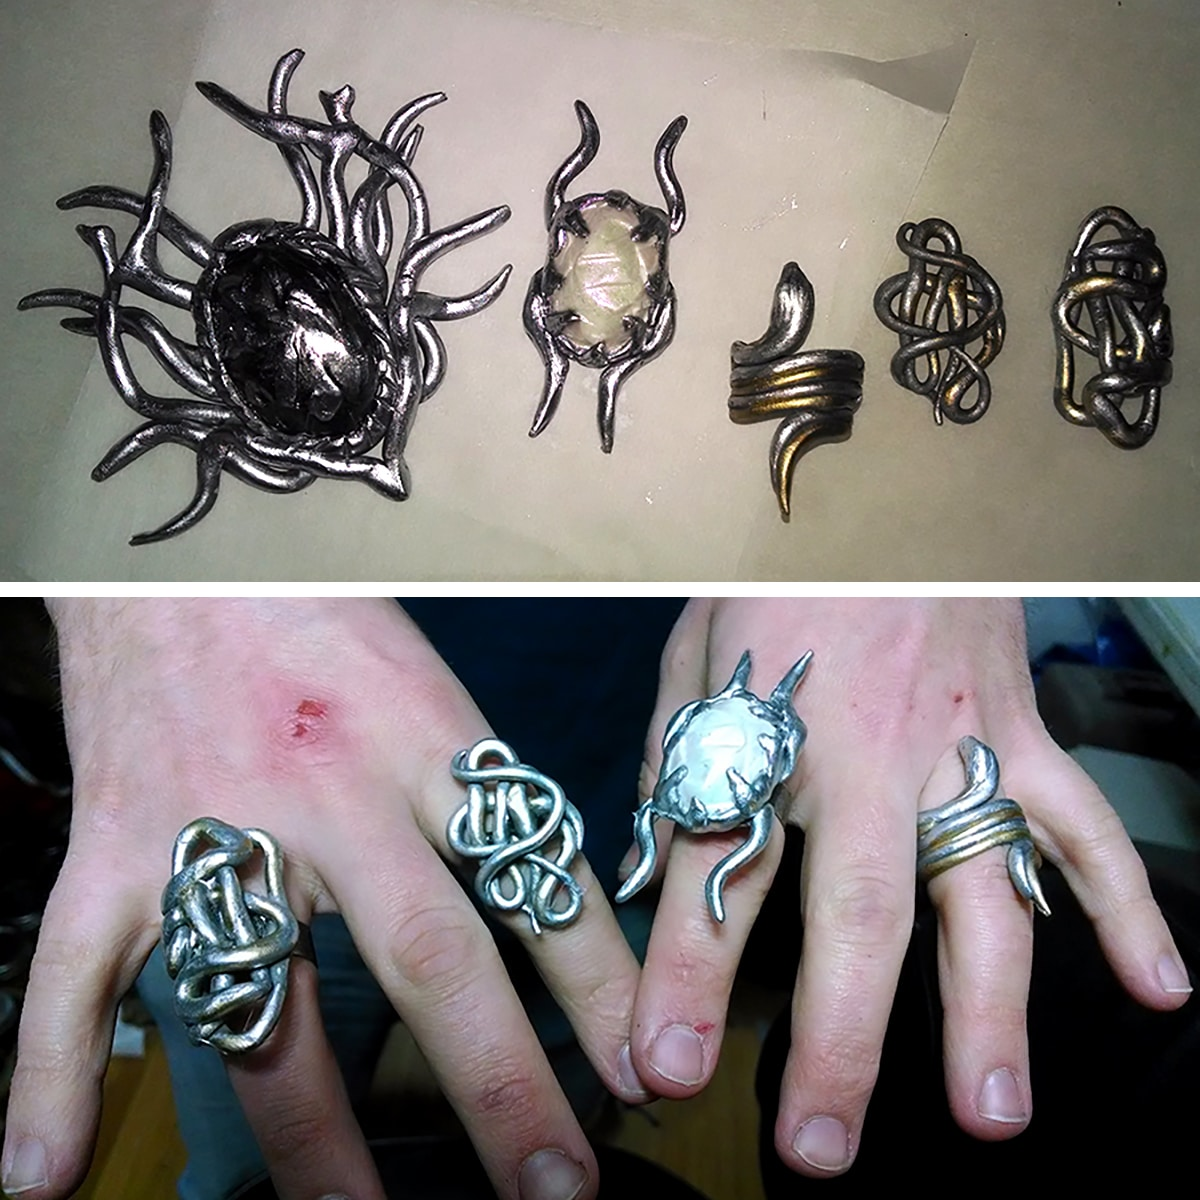 Various items of Thranduil's jewelery, laid out on a table and then shown on a man's hands.